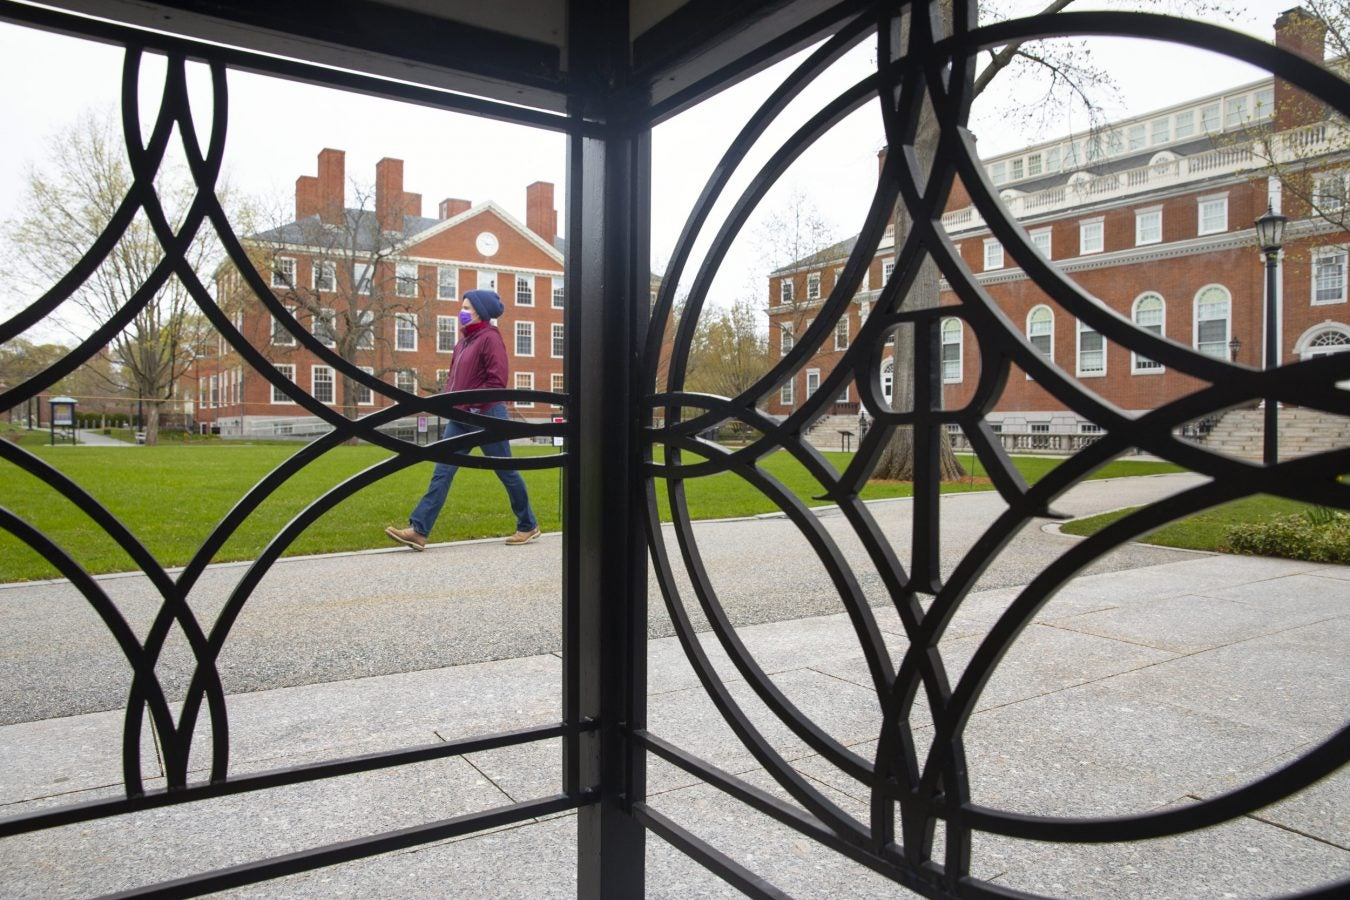 A woman's gait is framed by the iron logo of Radcliffe Institute.